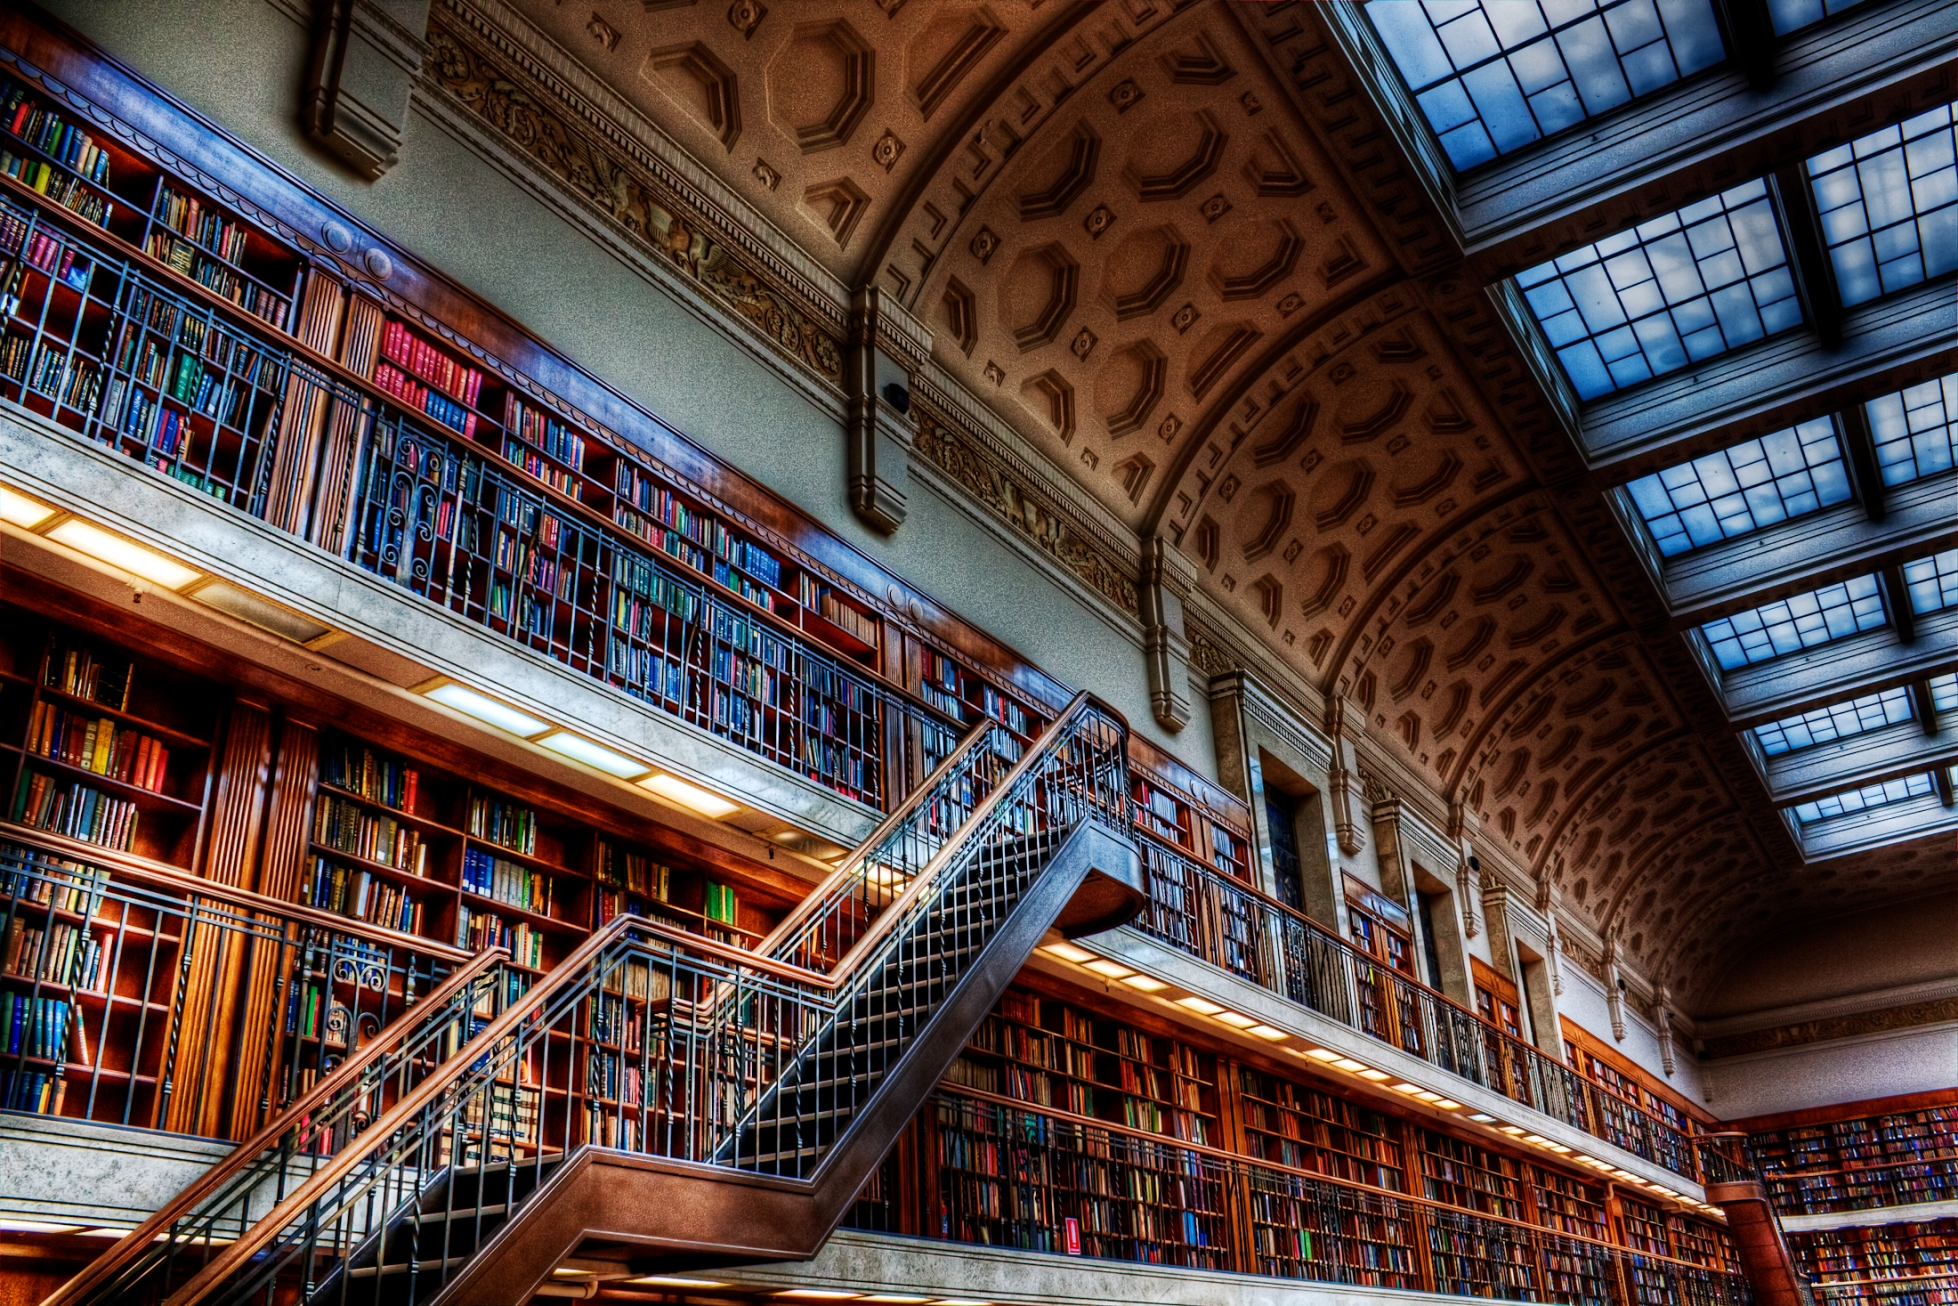 Bookshelf Iphone Wallpaper Hdr Full Hd Wallpaper And Background Image 1958x1306